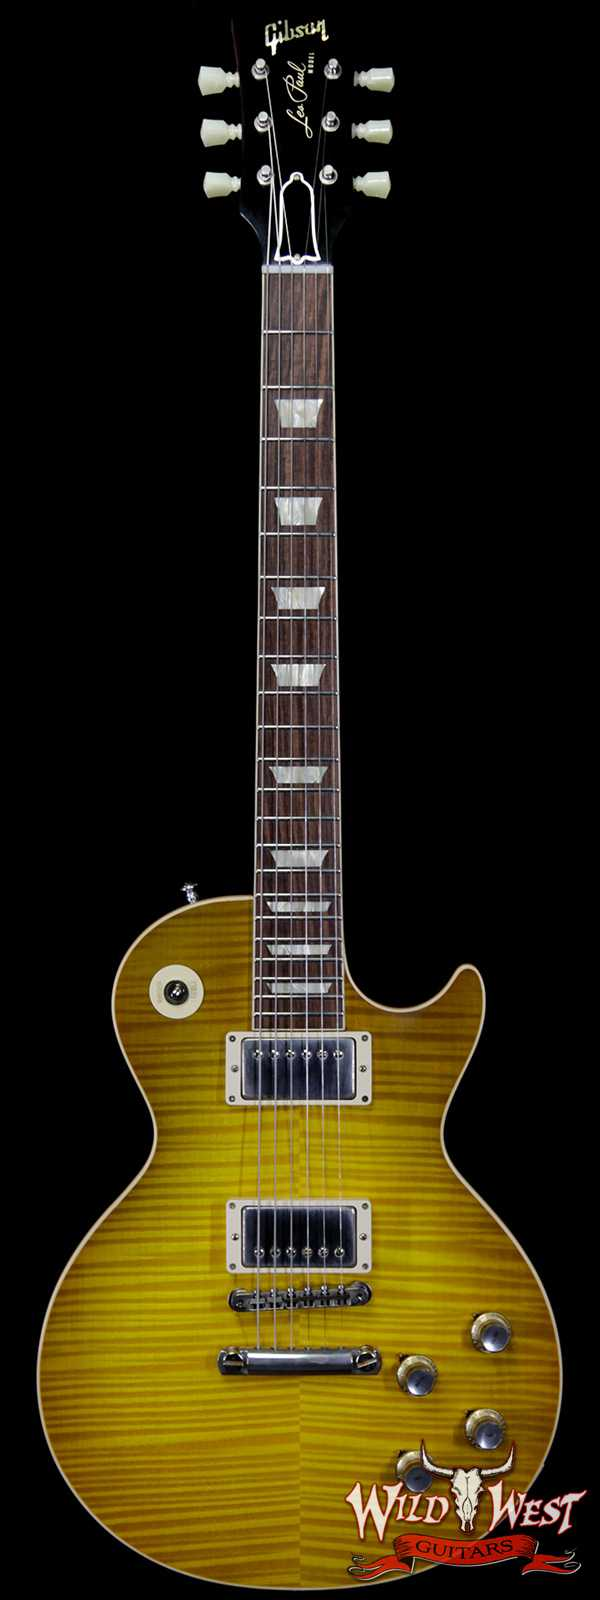 Gibson Custom Shop M2M Hand Selected Kill Top 1960 Les Paul Standard '60 Reissue R0 VOS Green Lemon Fade 8.40 LBS